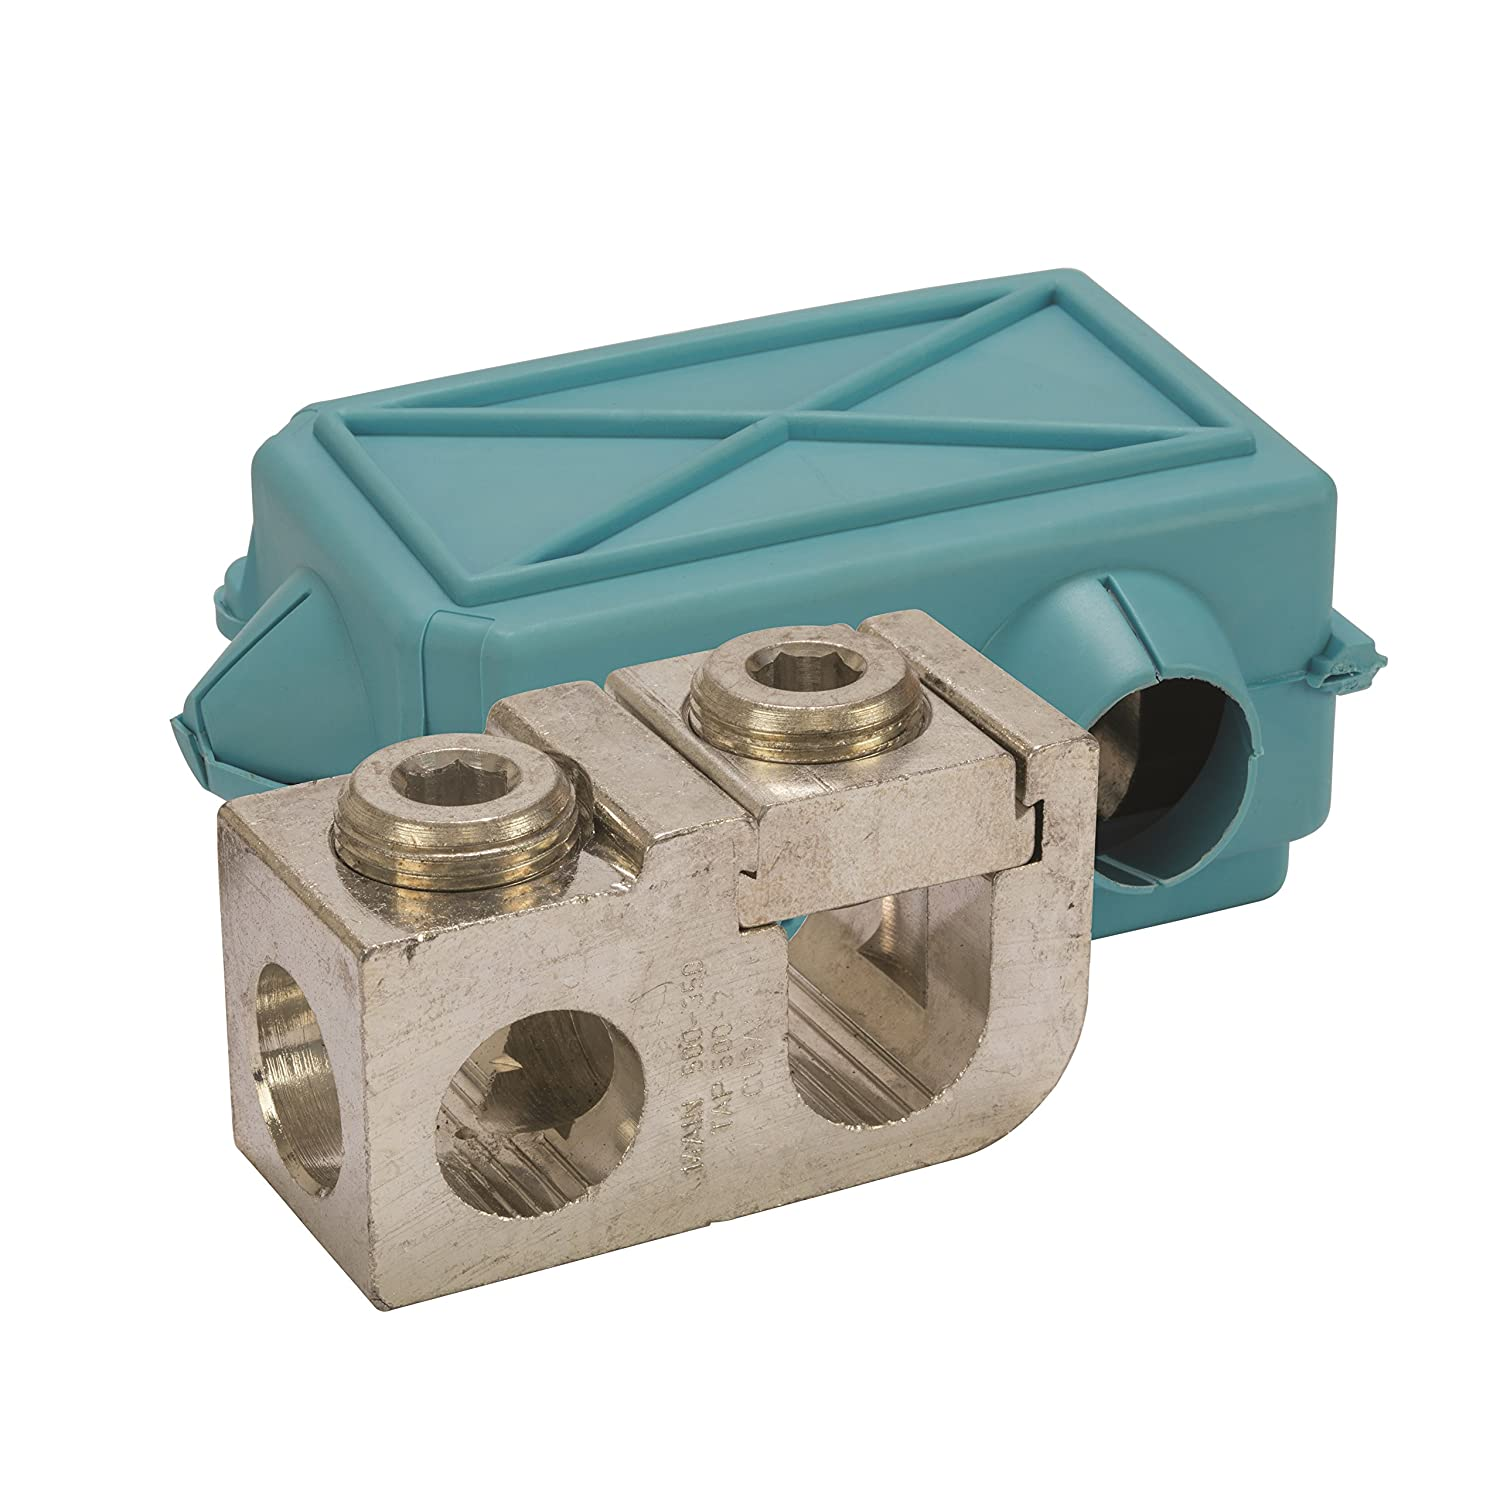 1.750 Height 500-350 Main Dual Rated Mechanical Tap Connector with Insulating Cover 500-2 Tap 1.375 Width 3.125 Length